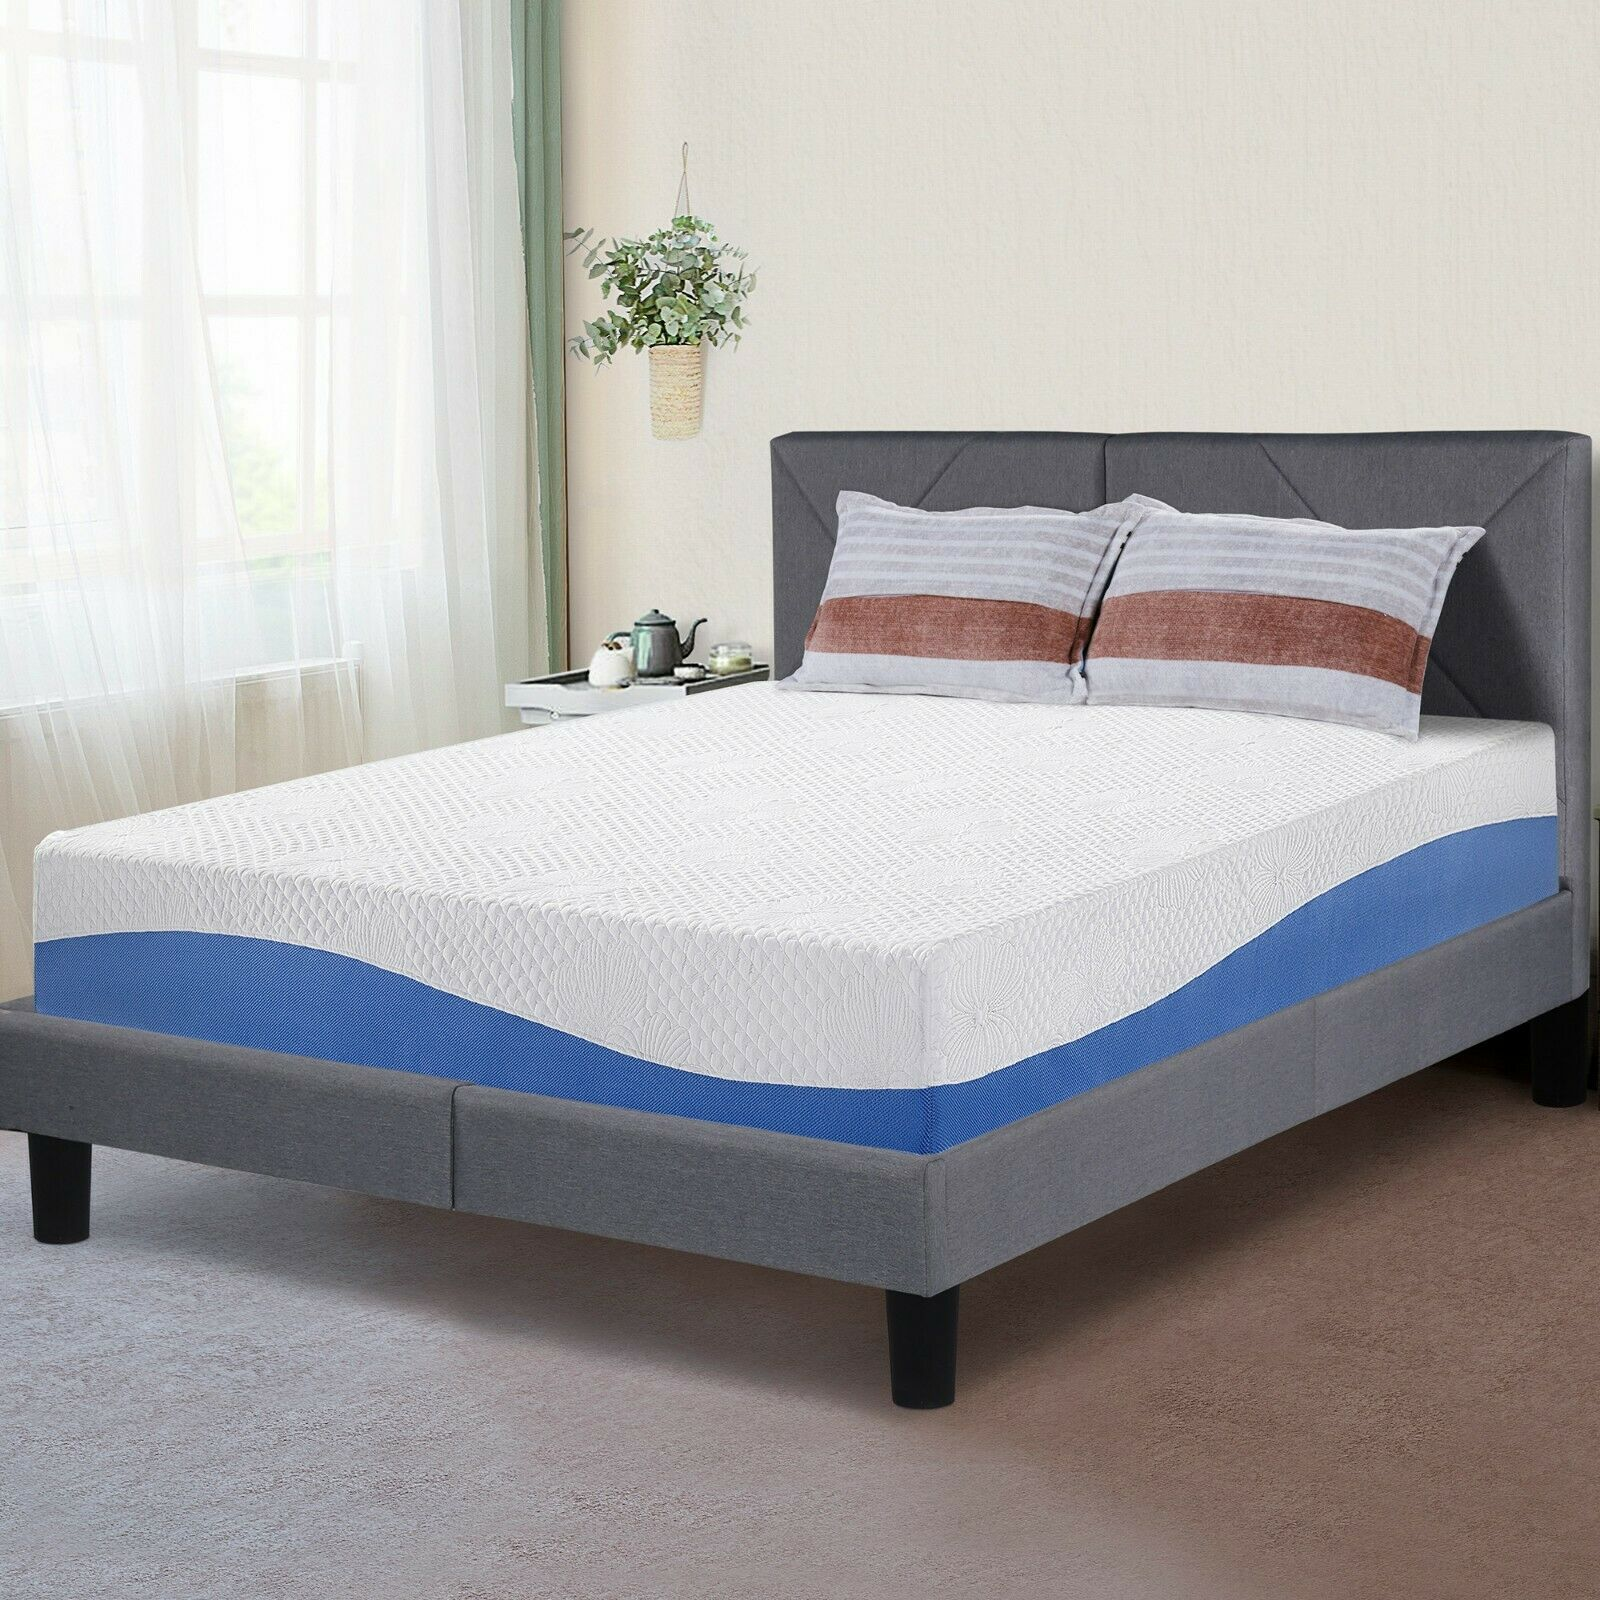 SLEEPLACE 10 Inch I GEL Memory Foam Mattress , Bed, Blue / G